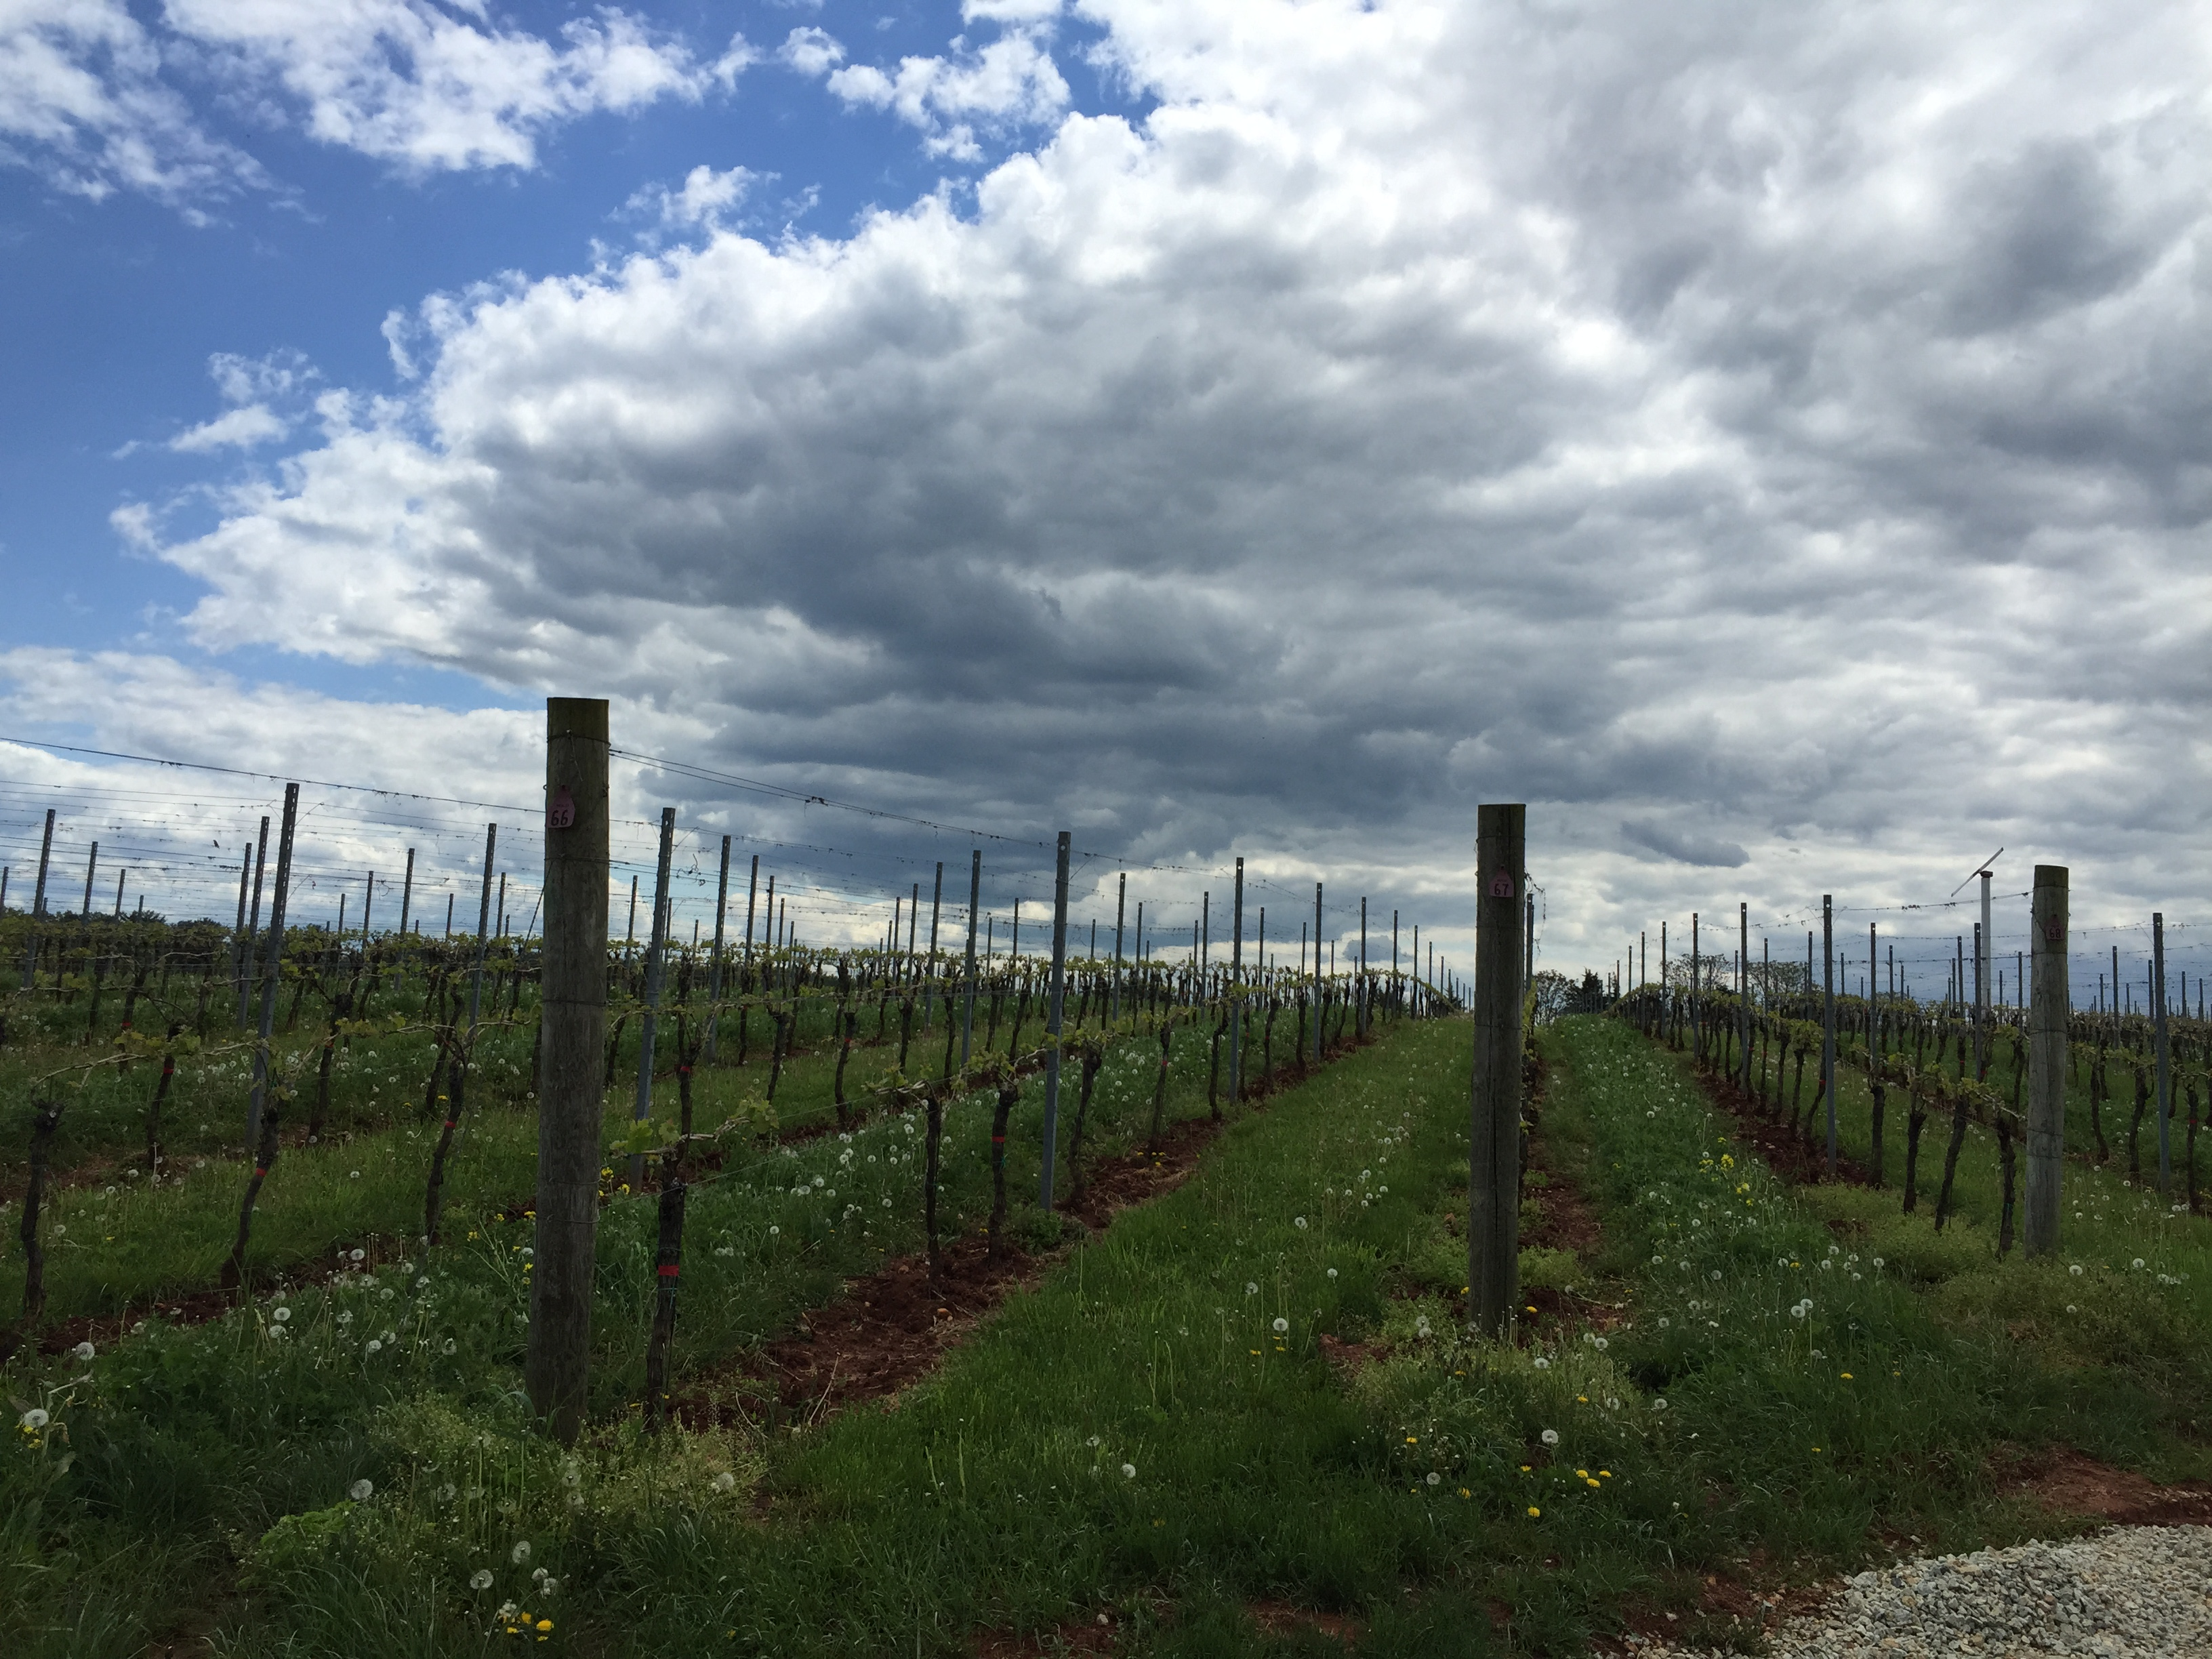 Va. governor addresses grape shortage in local wine industry